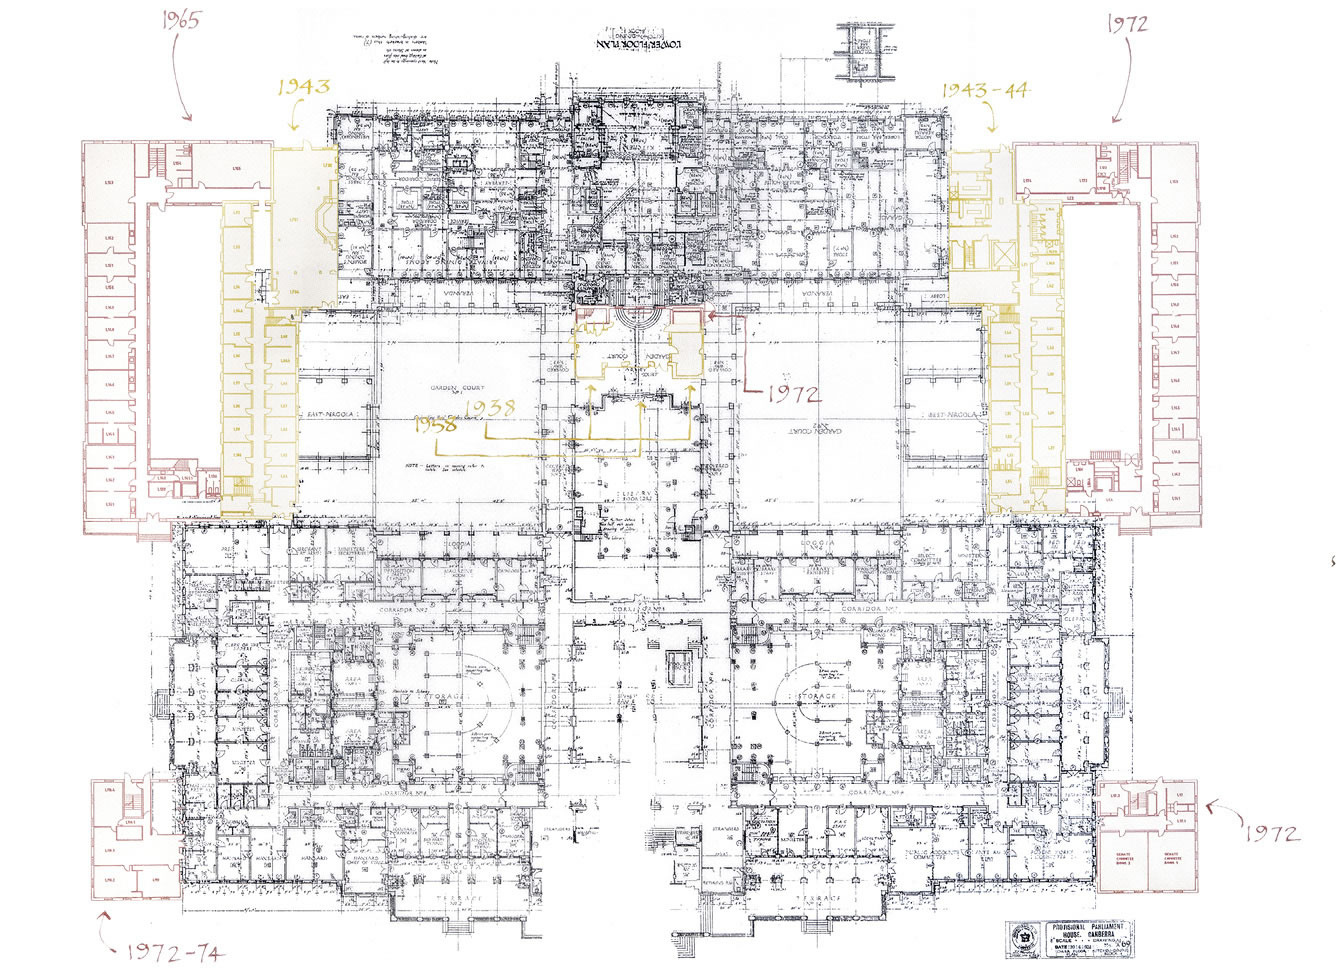 Plan drawing of the lower floor showing additions in 1938, 1943, 1943-44, 1958, 1965 and 1972-74.